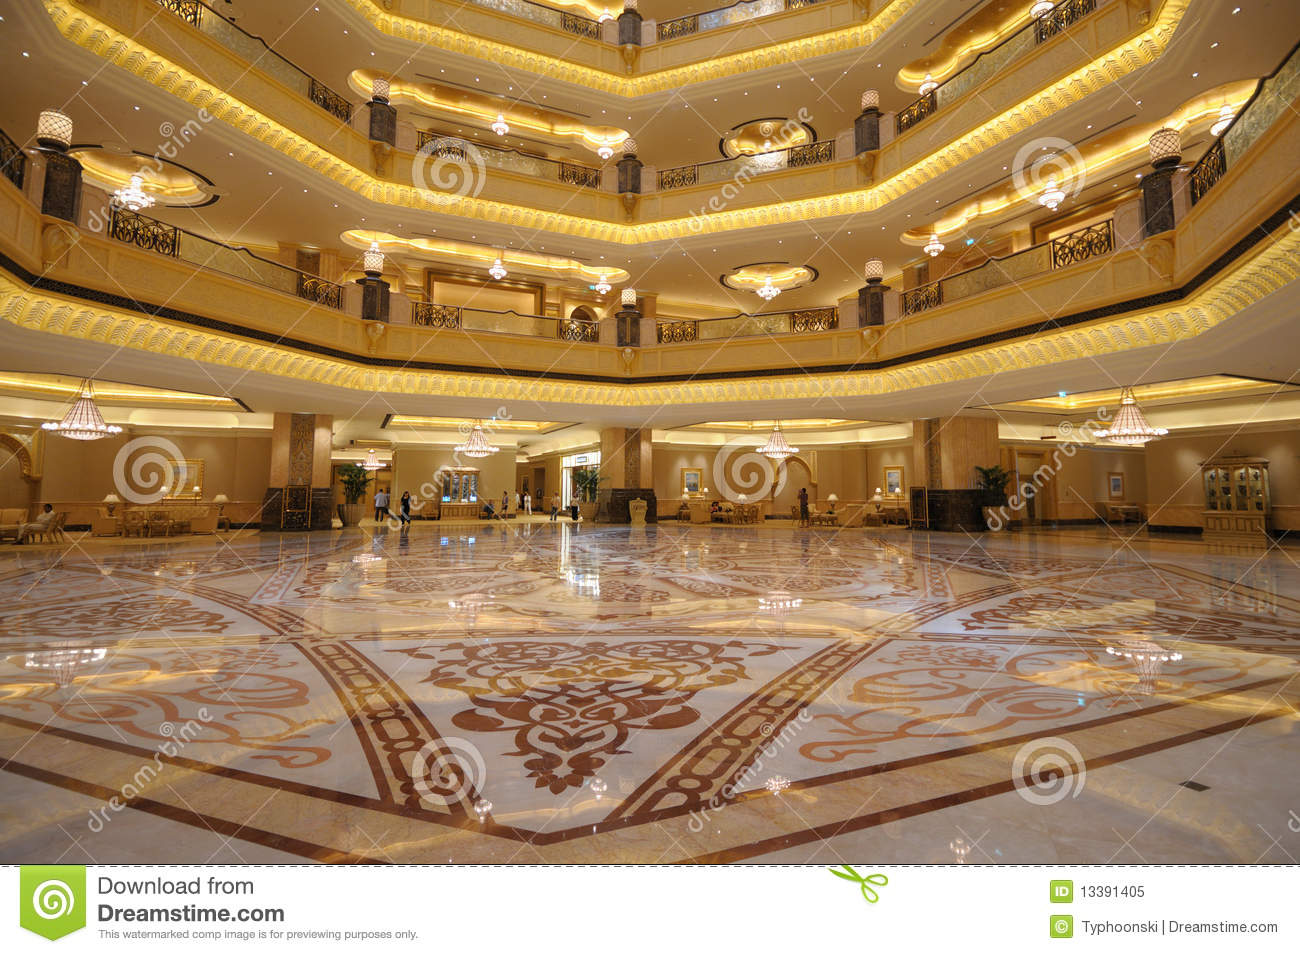 Emirates Palace Abu Dhabi Royalty Free Stock Image